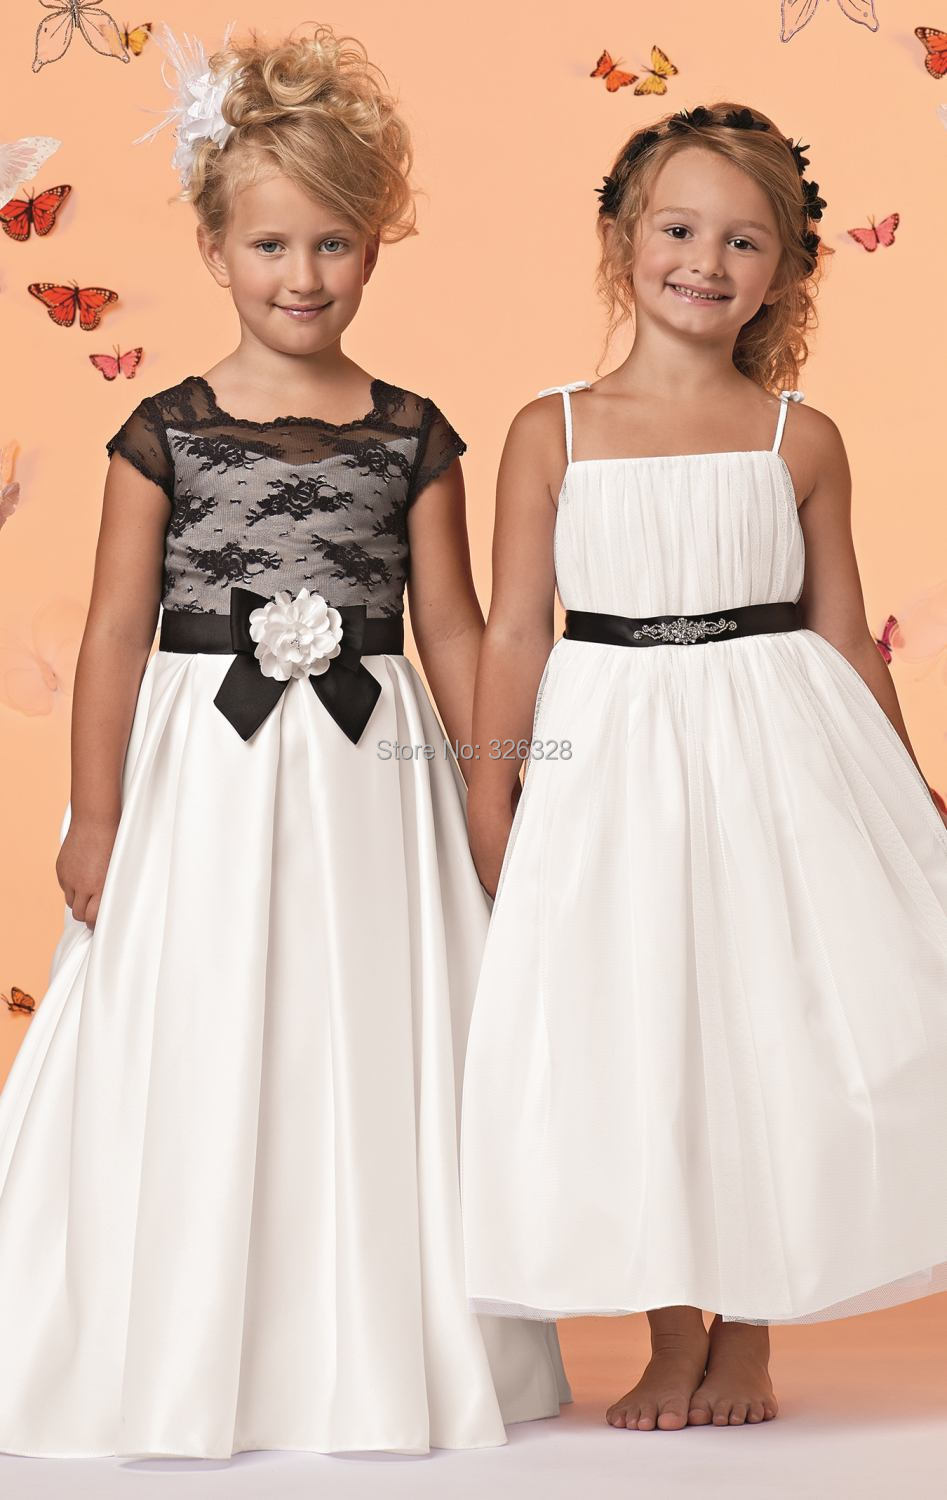 Compare Prices on Ivory Black Flower Girl Dresses- Online Shopping ...